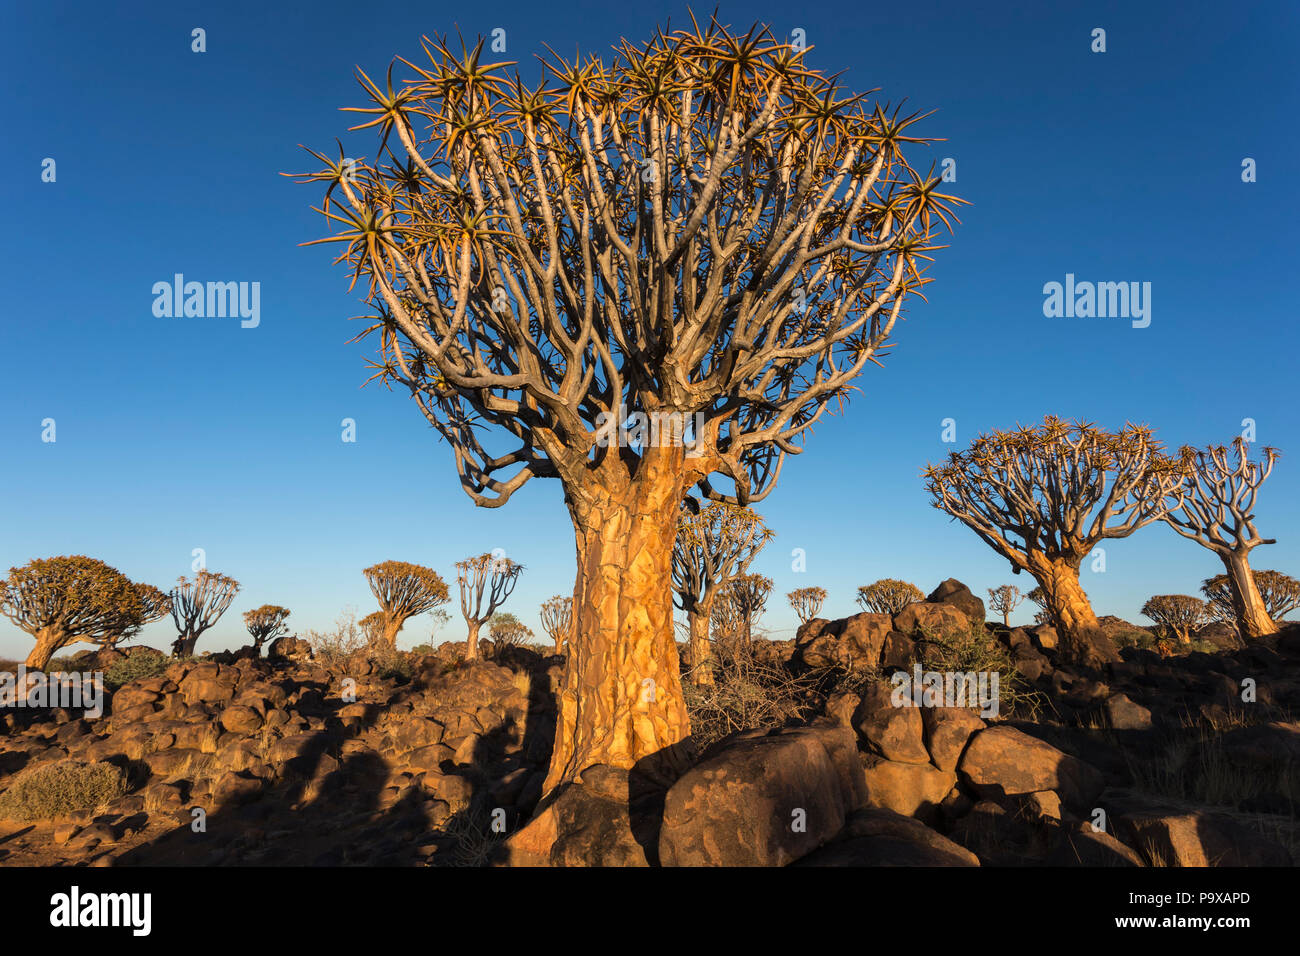 Arbres carquois (kokerboom) (Aloidendron dichotomum, anciennement l'Aloe dichotoma), forêt Quiver Tree, Keetmanshoop, Namibie, Photo Stock